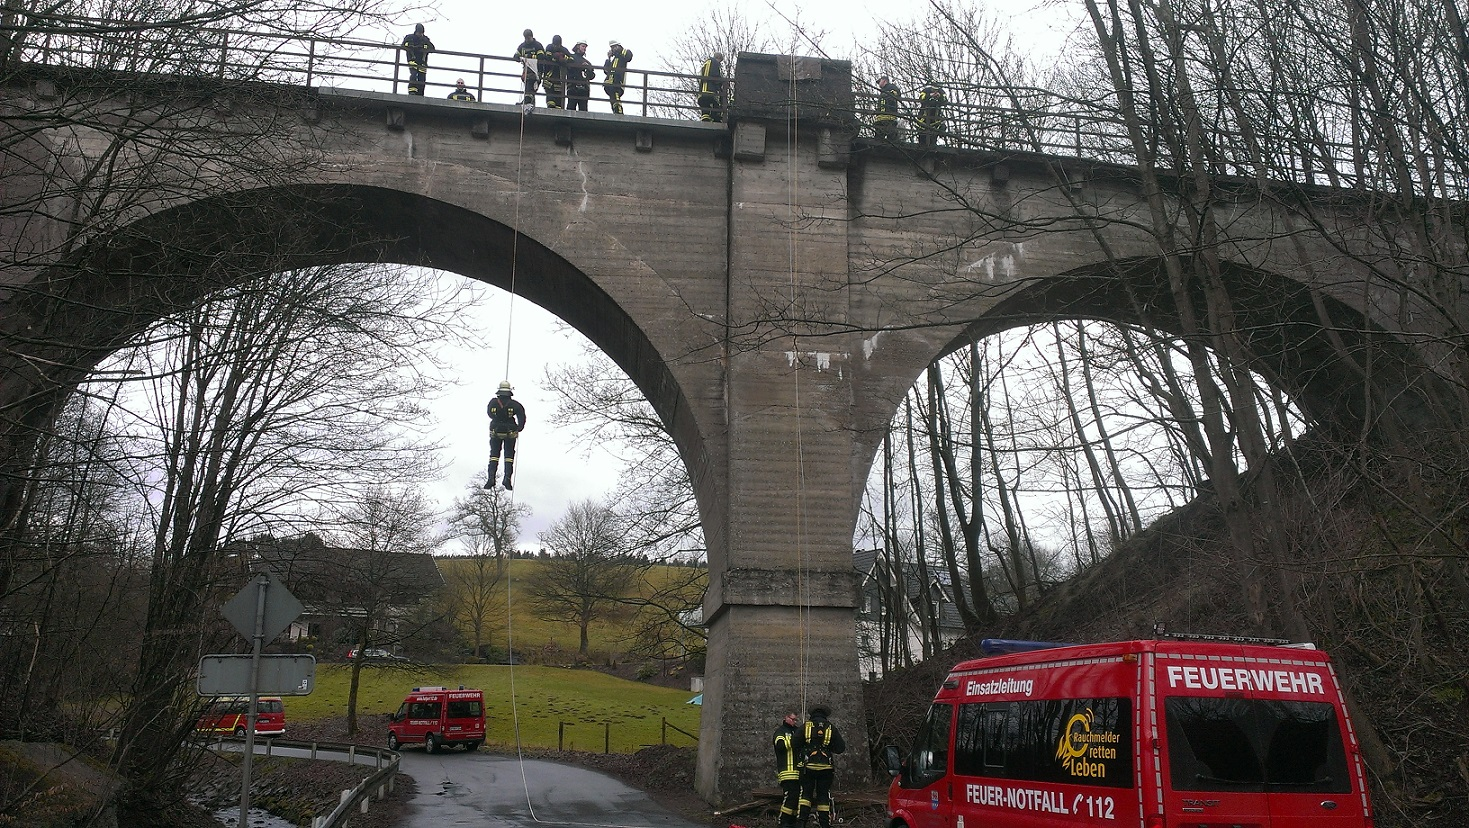 Morsbach fire brigade practising high angle rescue techniques